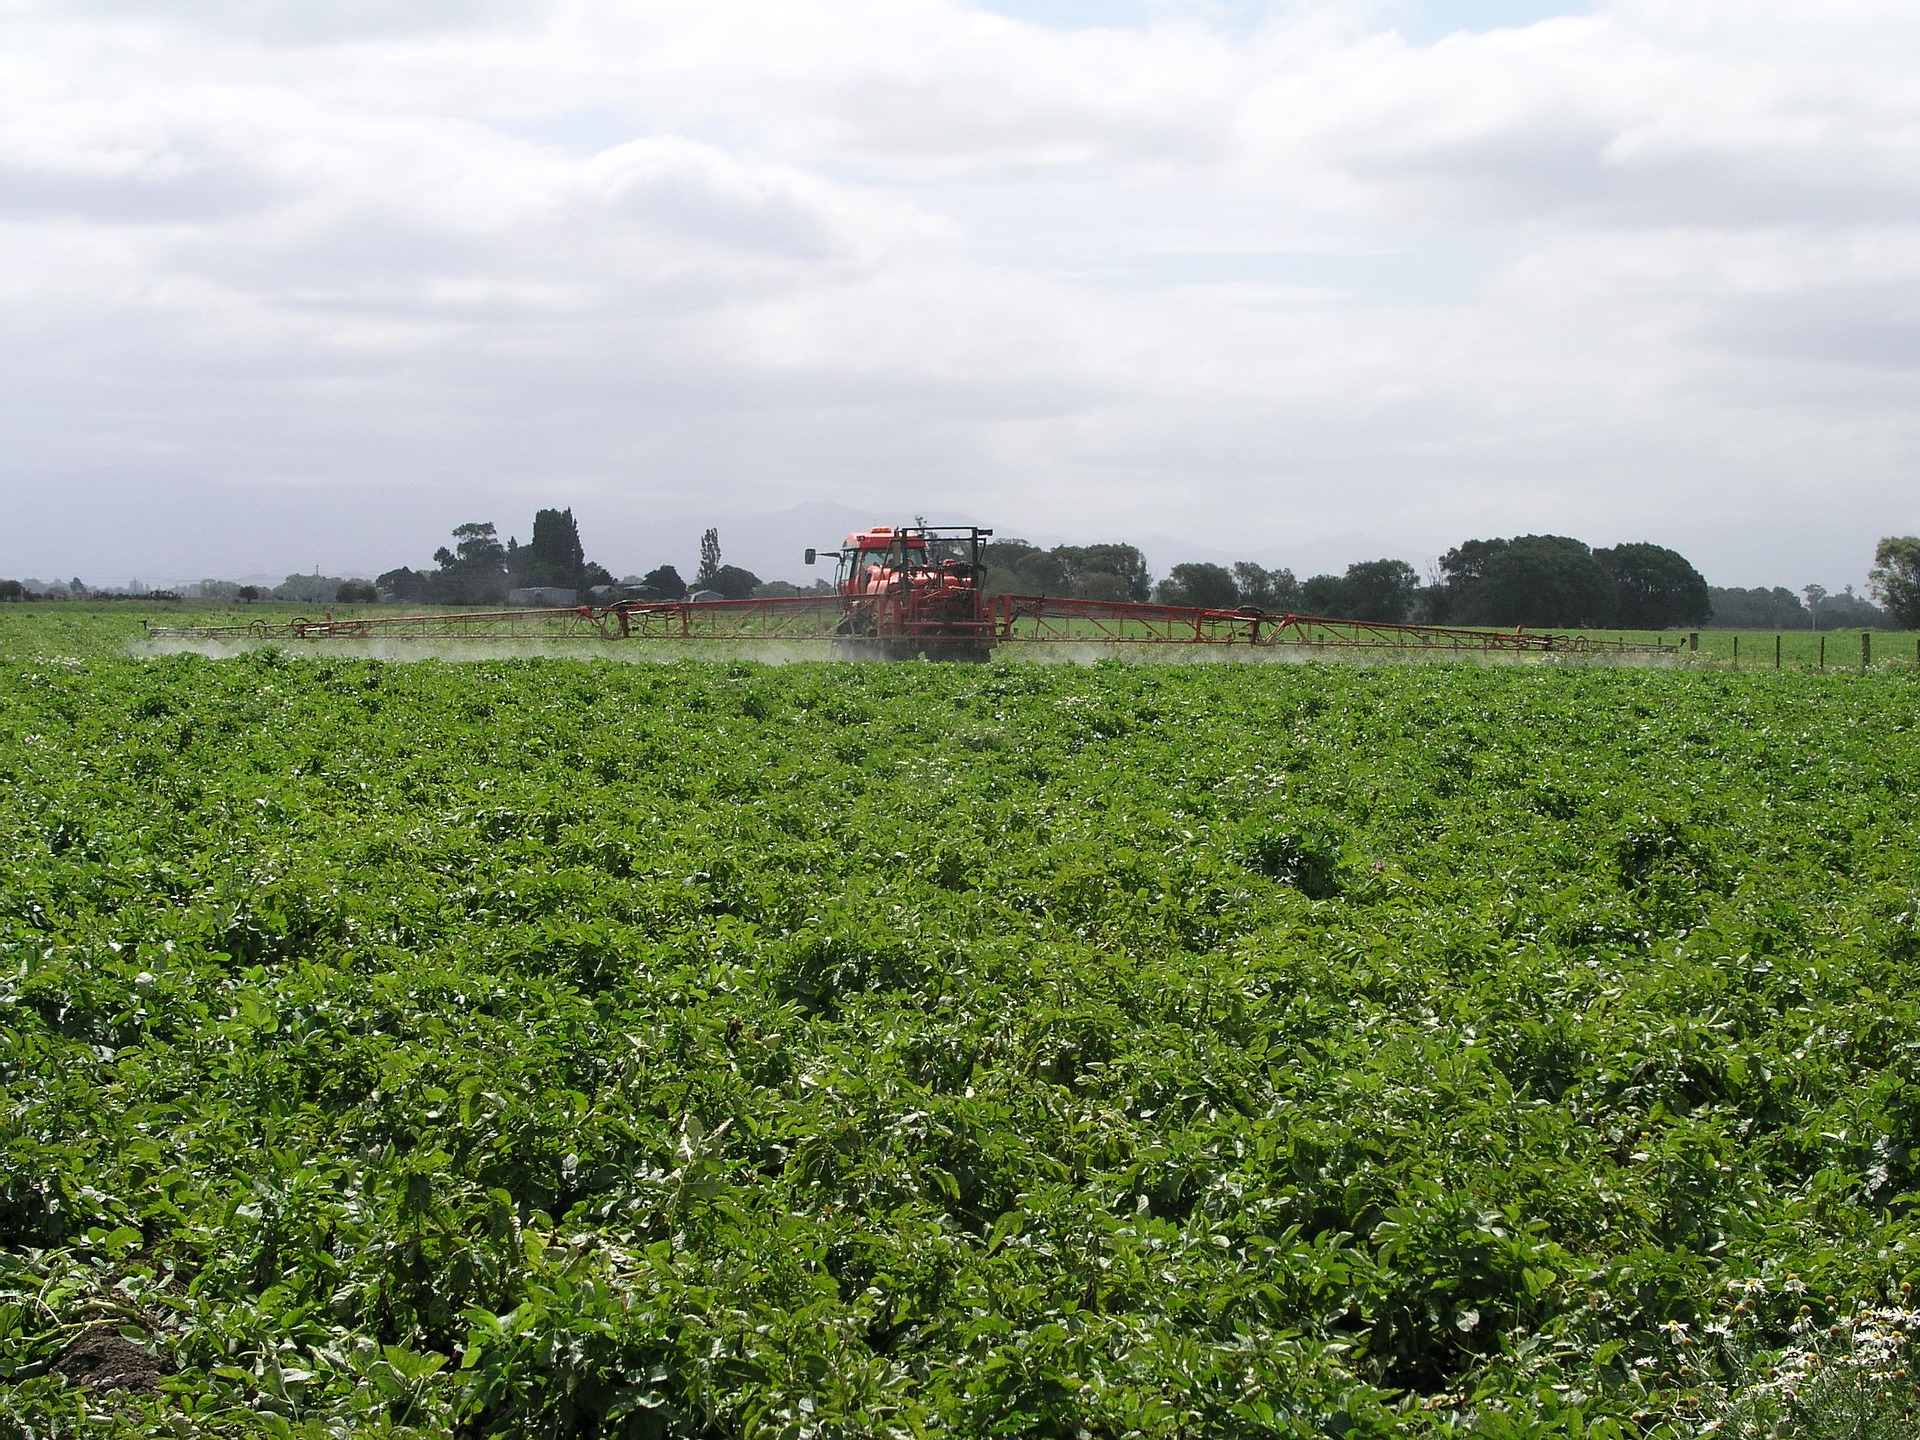 farm field with tractor spraying pesticides